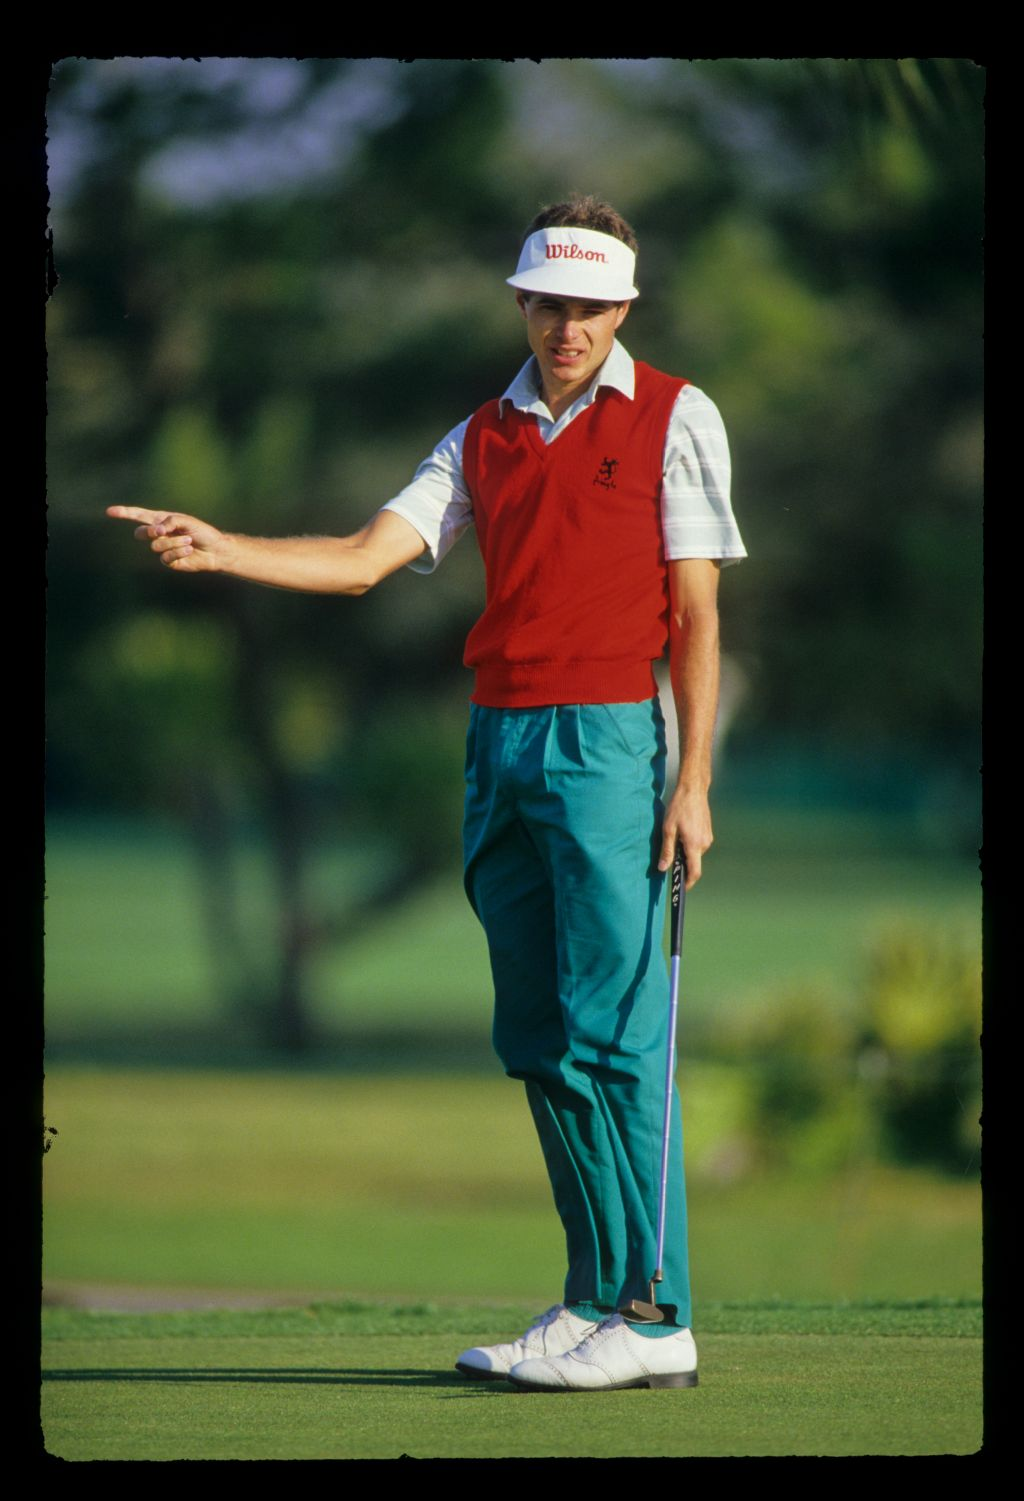 Philip Parkin gesturing after a putt during the 1987 Hertz Bay Hill Classic